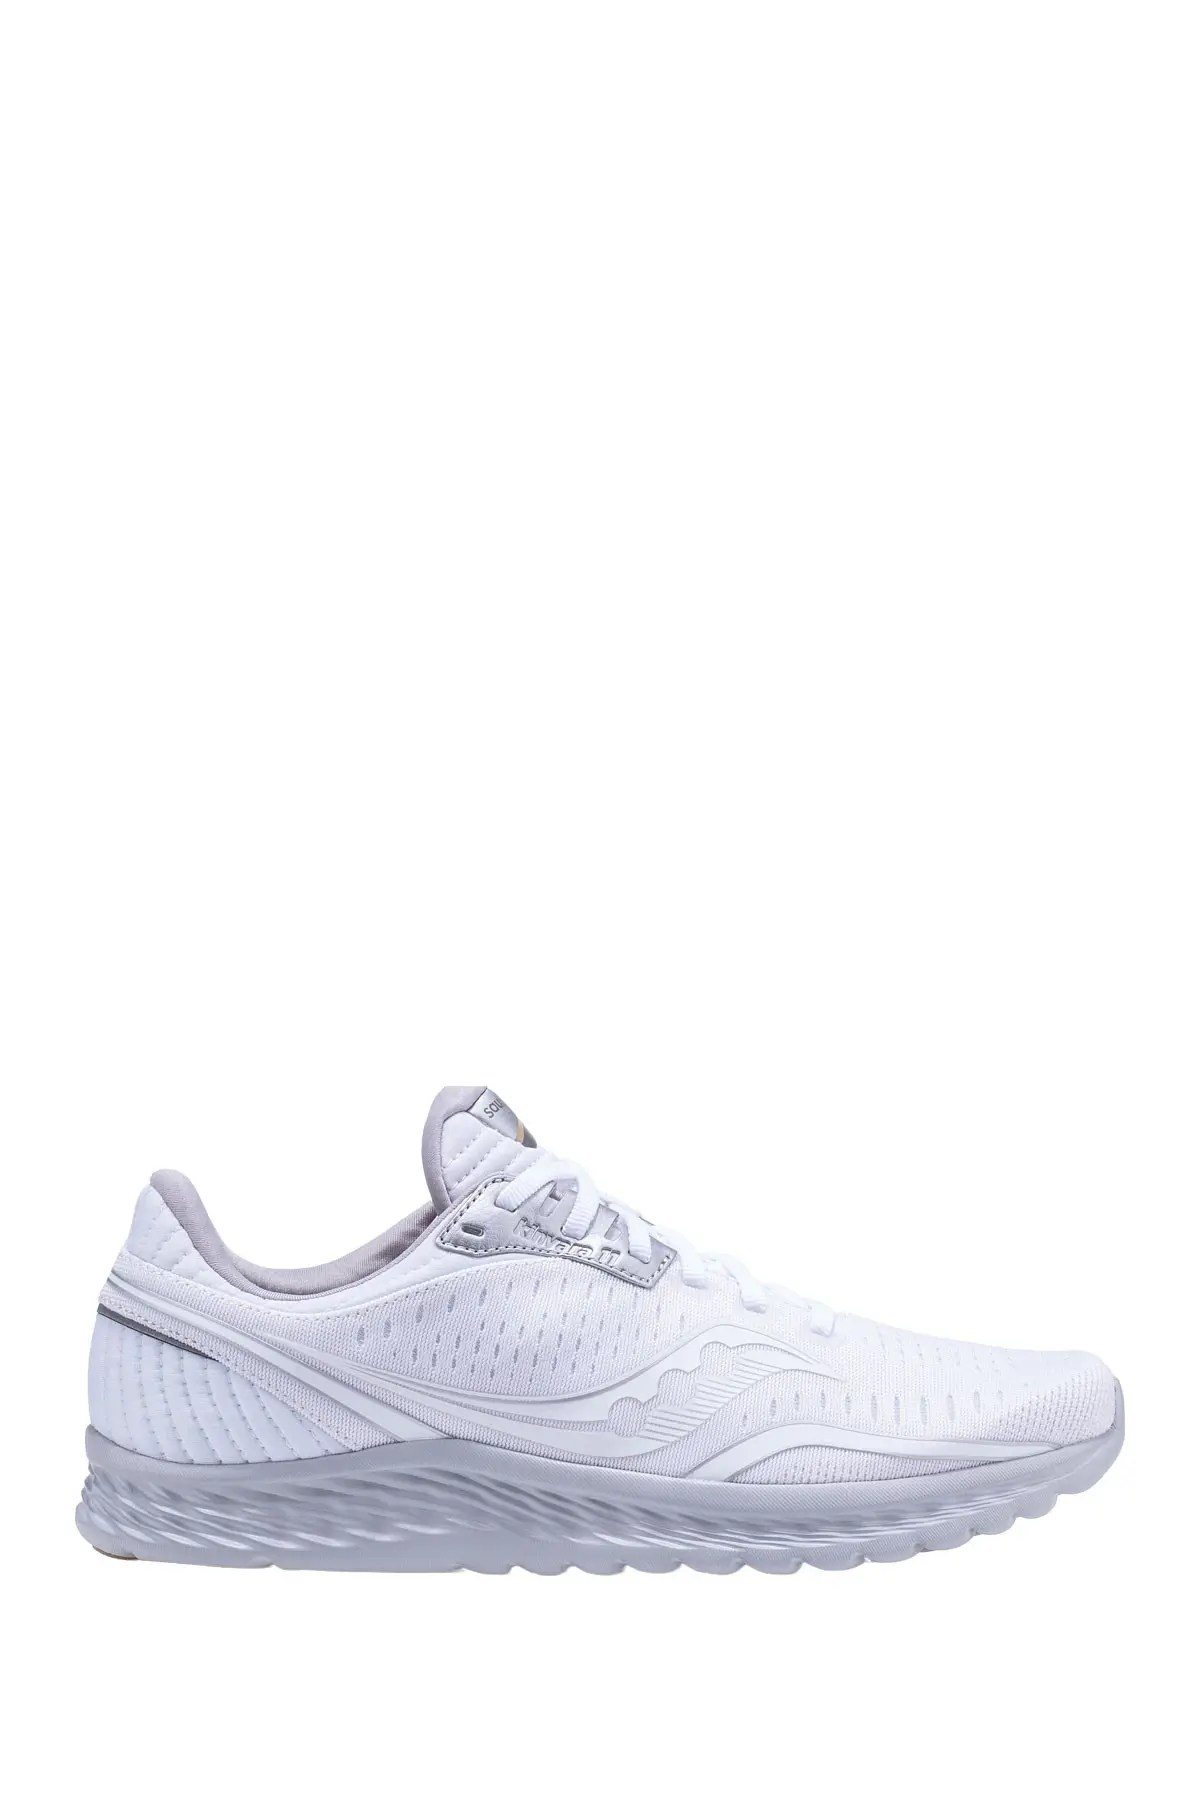 white sneakers tennis shoes